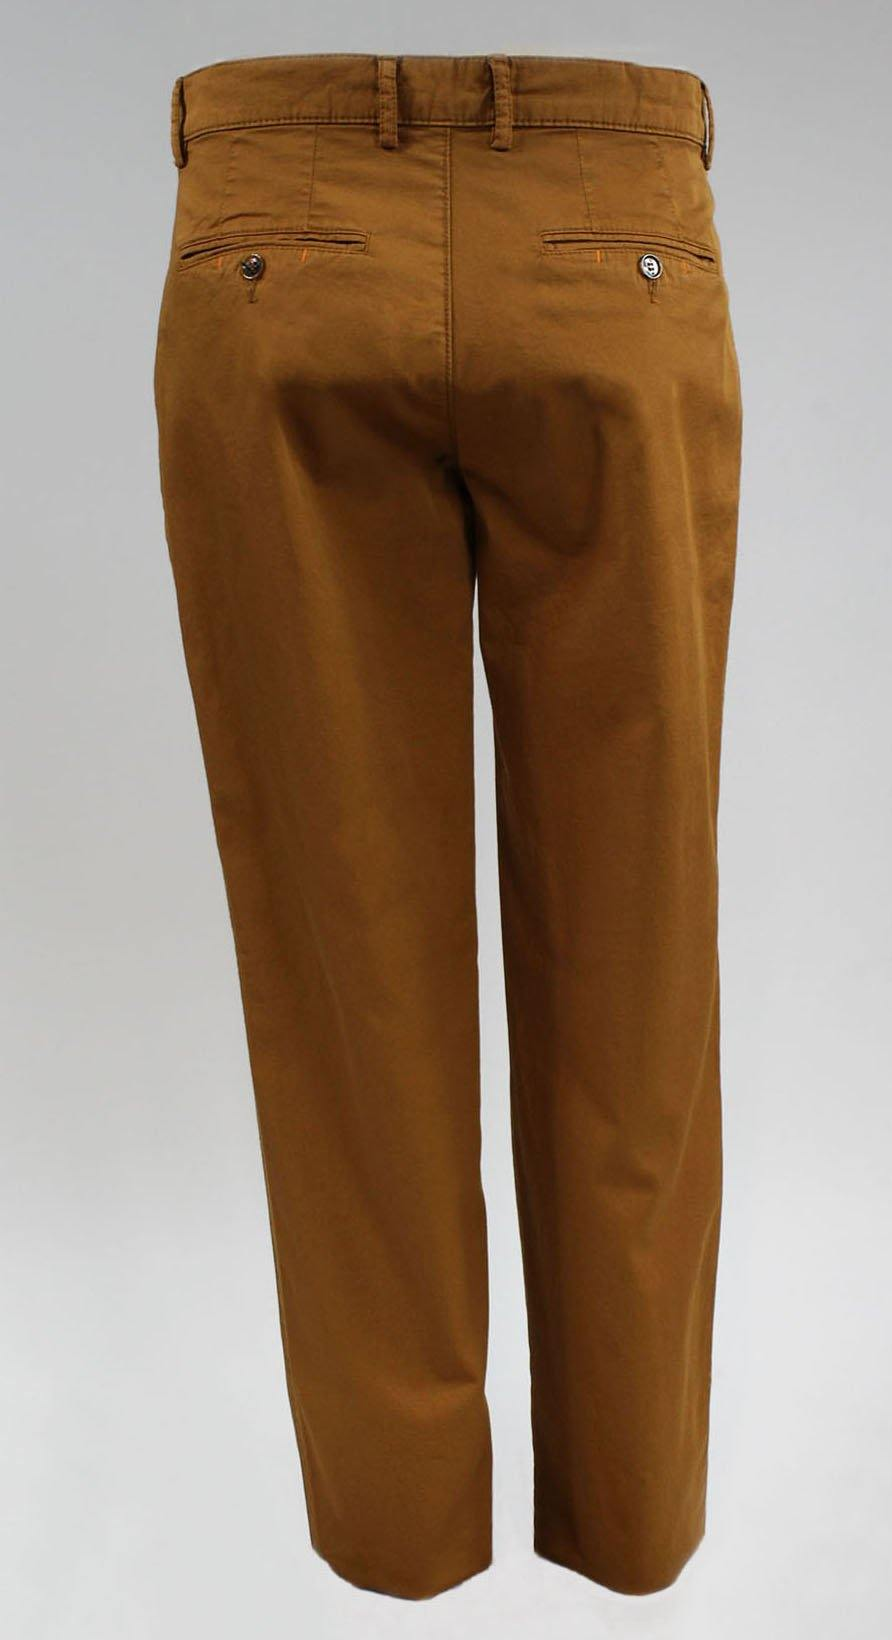 Euro Lightweight Chino Pant - Haight & Ashbury